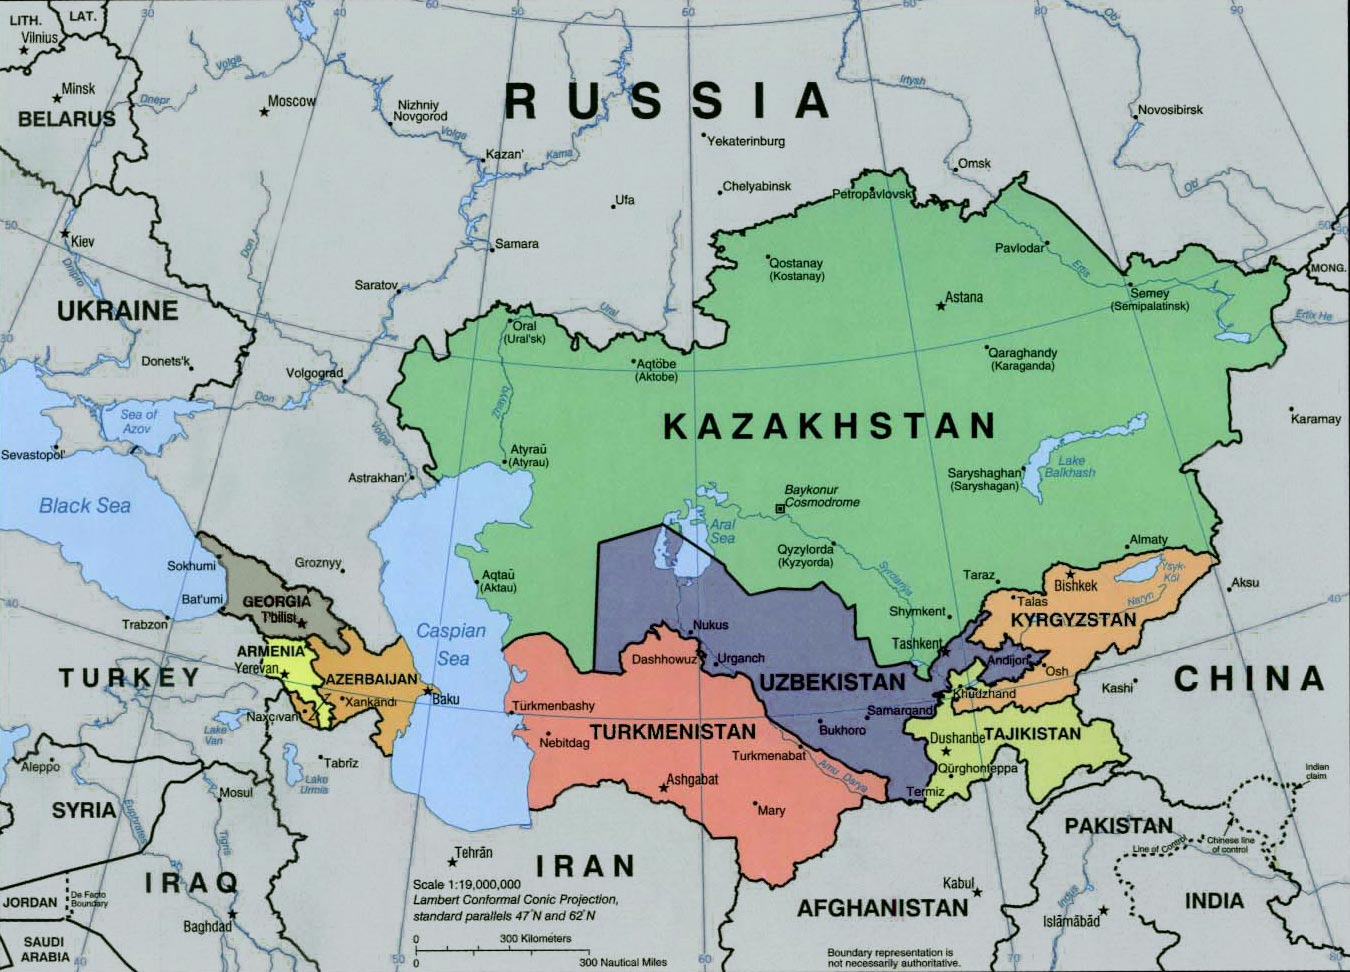 caucasus map Actually getting to Central Asia